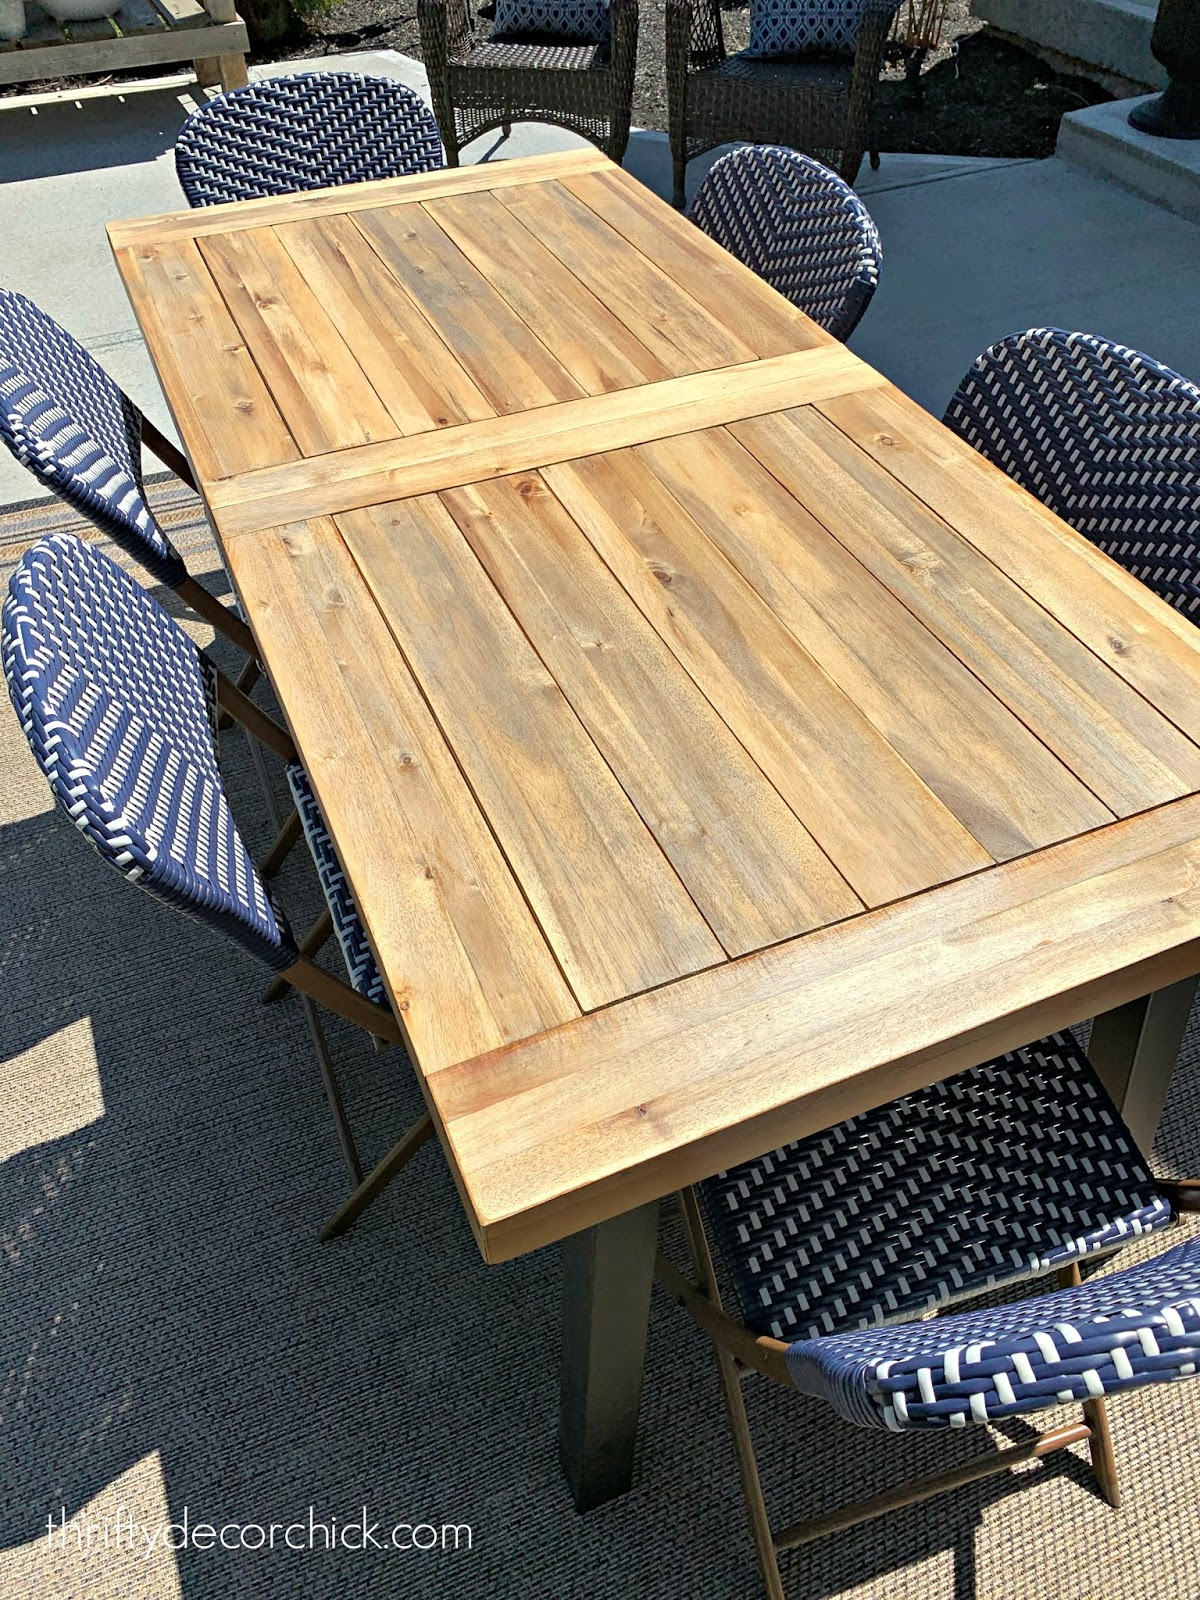 Refinish outdoor wood table